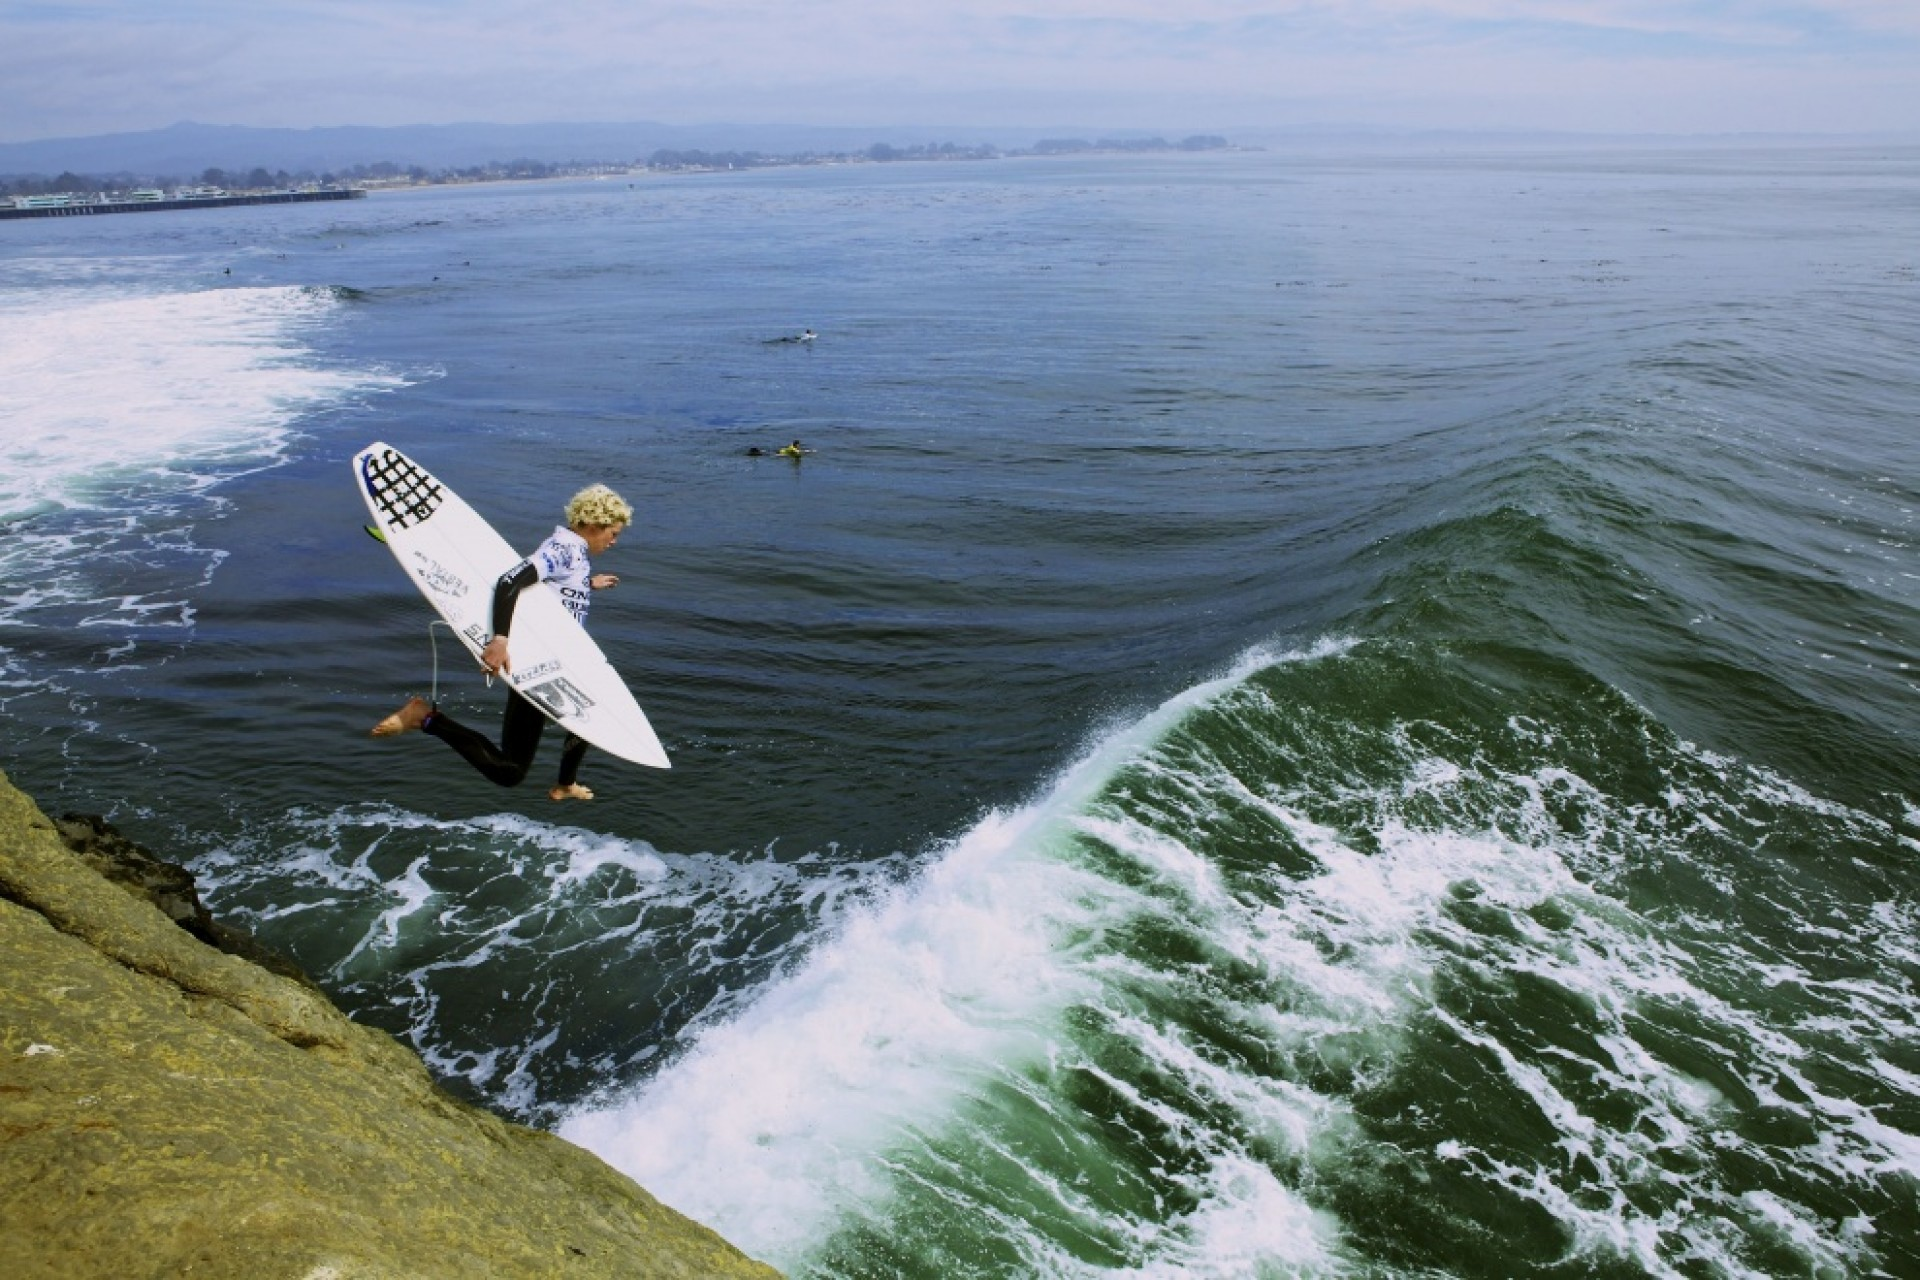 oneillCWC's photo of Steamer Lane